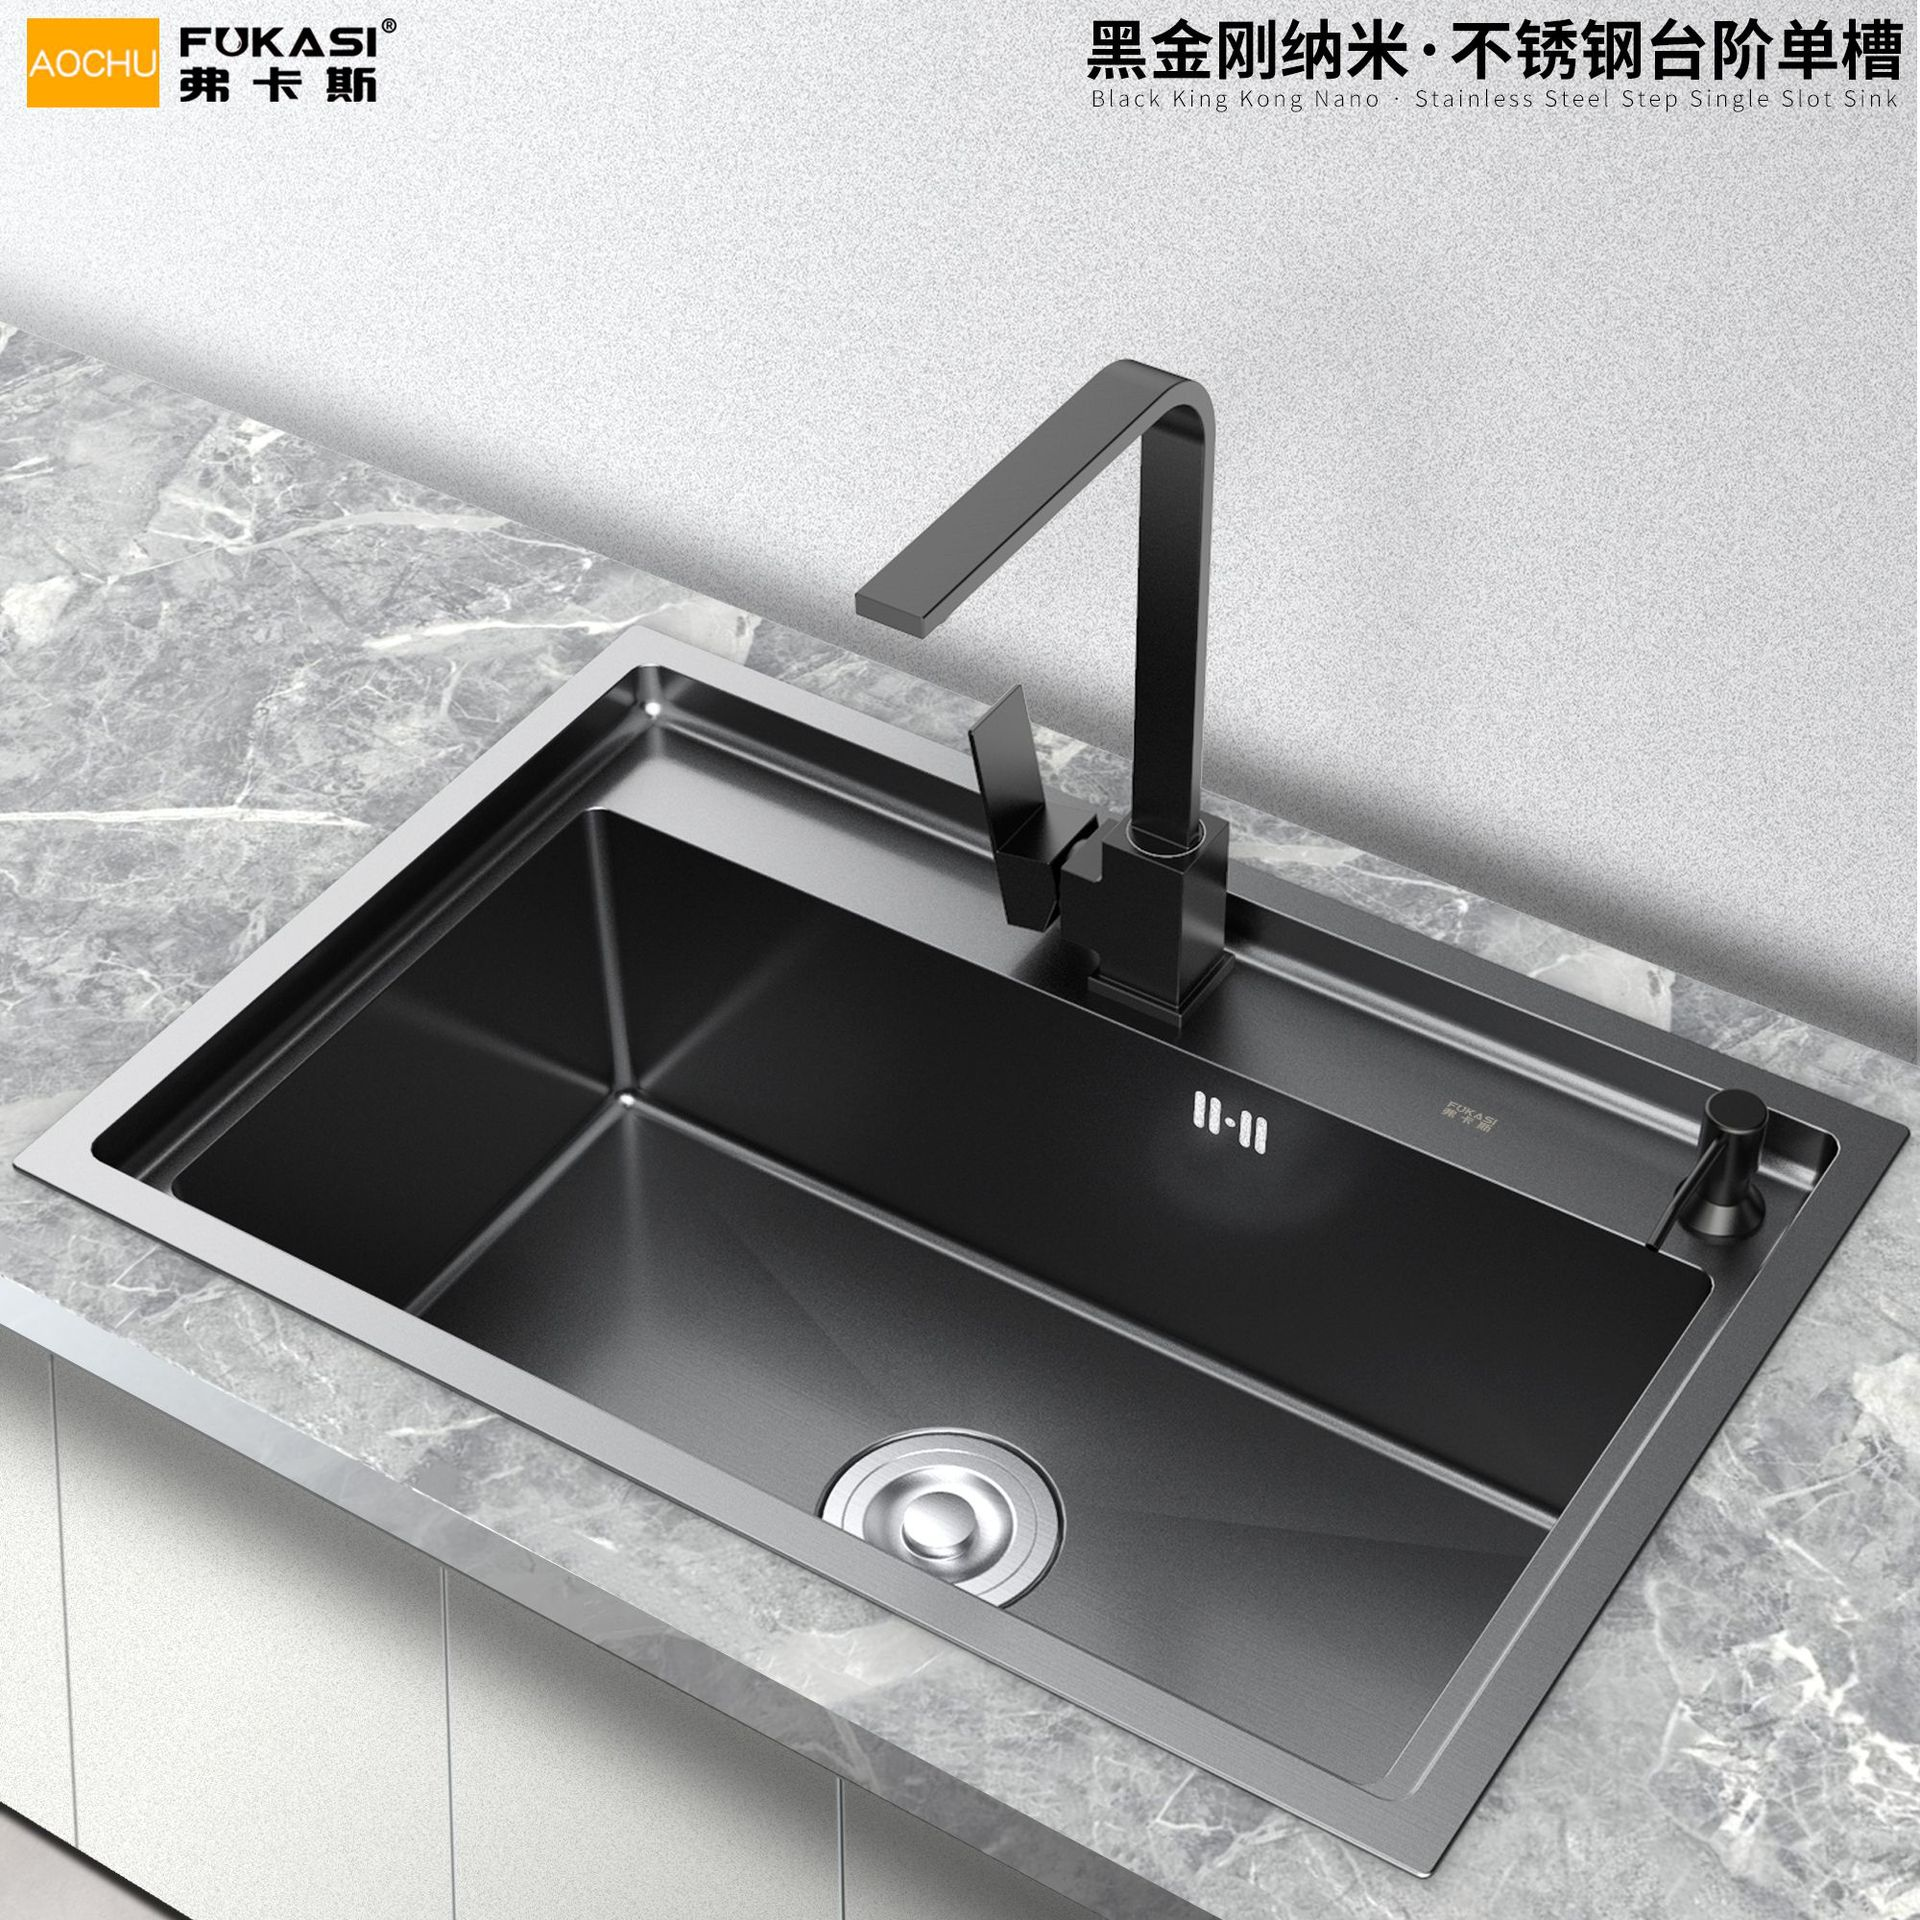 Black King Kong Nano Stainless Steel Hand Sink 201 Single Sink Step Thickened Black Dish Basin 304 Kitchen Faucet